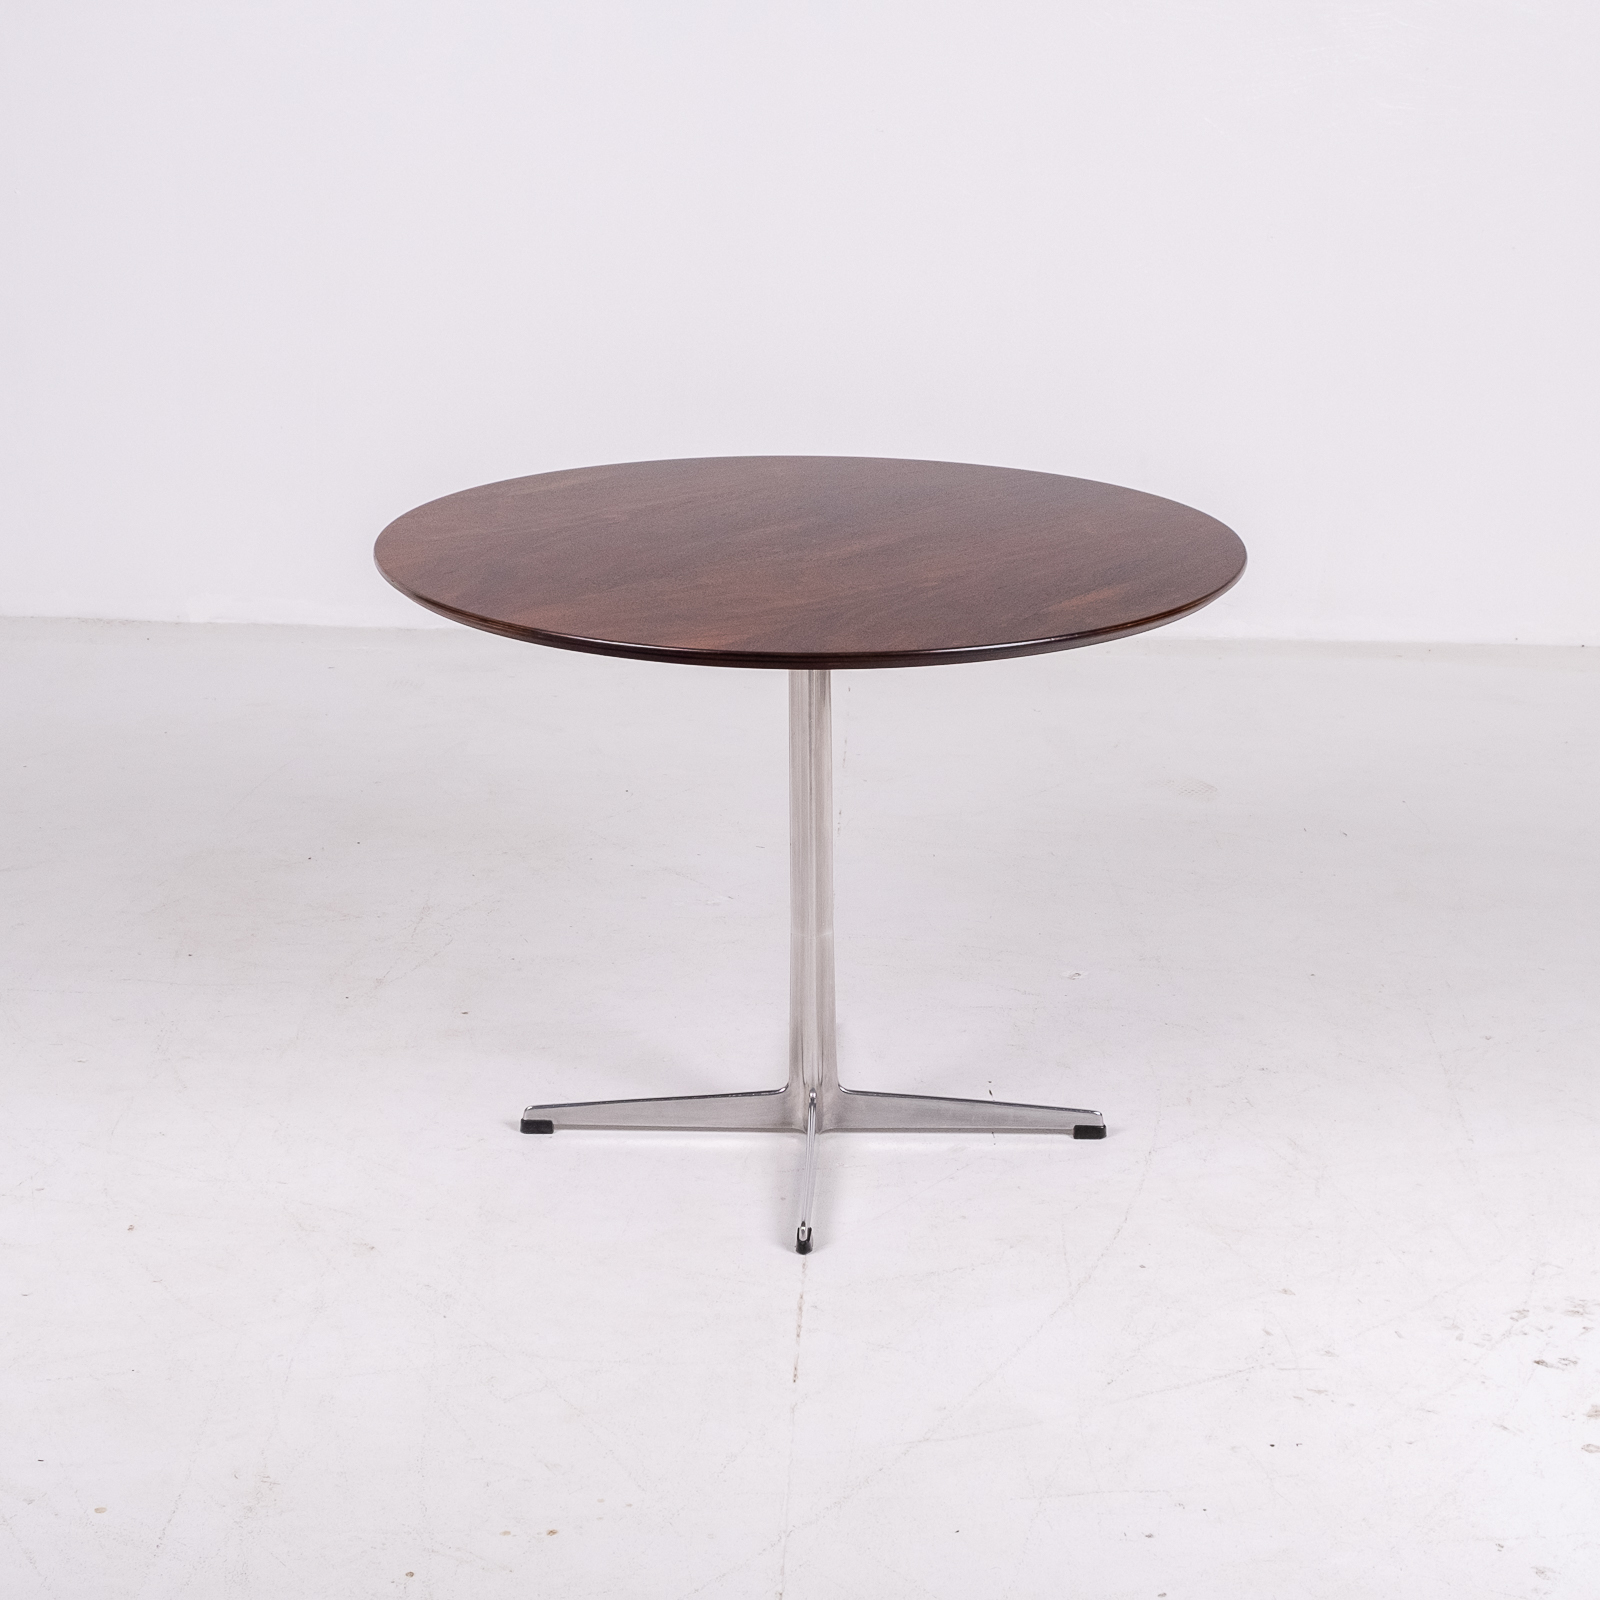 Cafe Table By Arne Jacobsen With Rosewood Top And Steel Pedestal Base, 1960s, Denmark 02